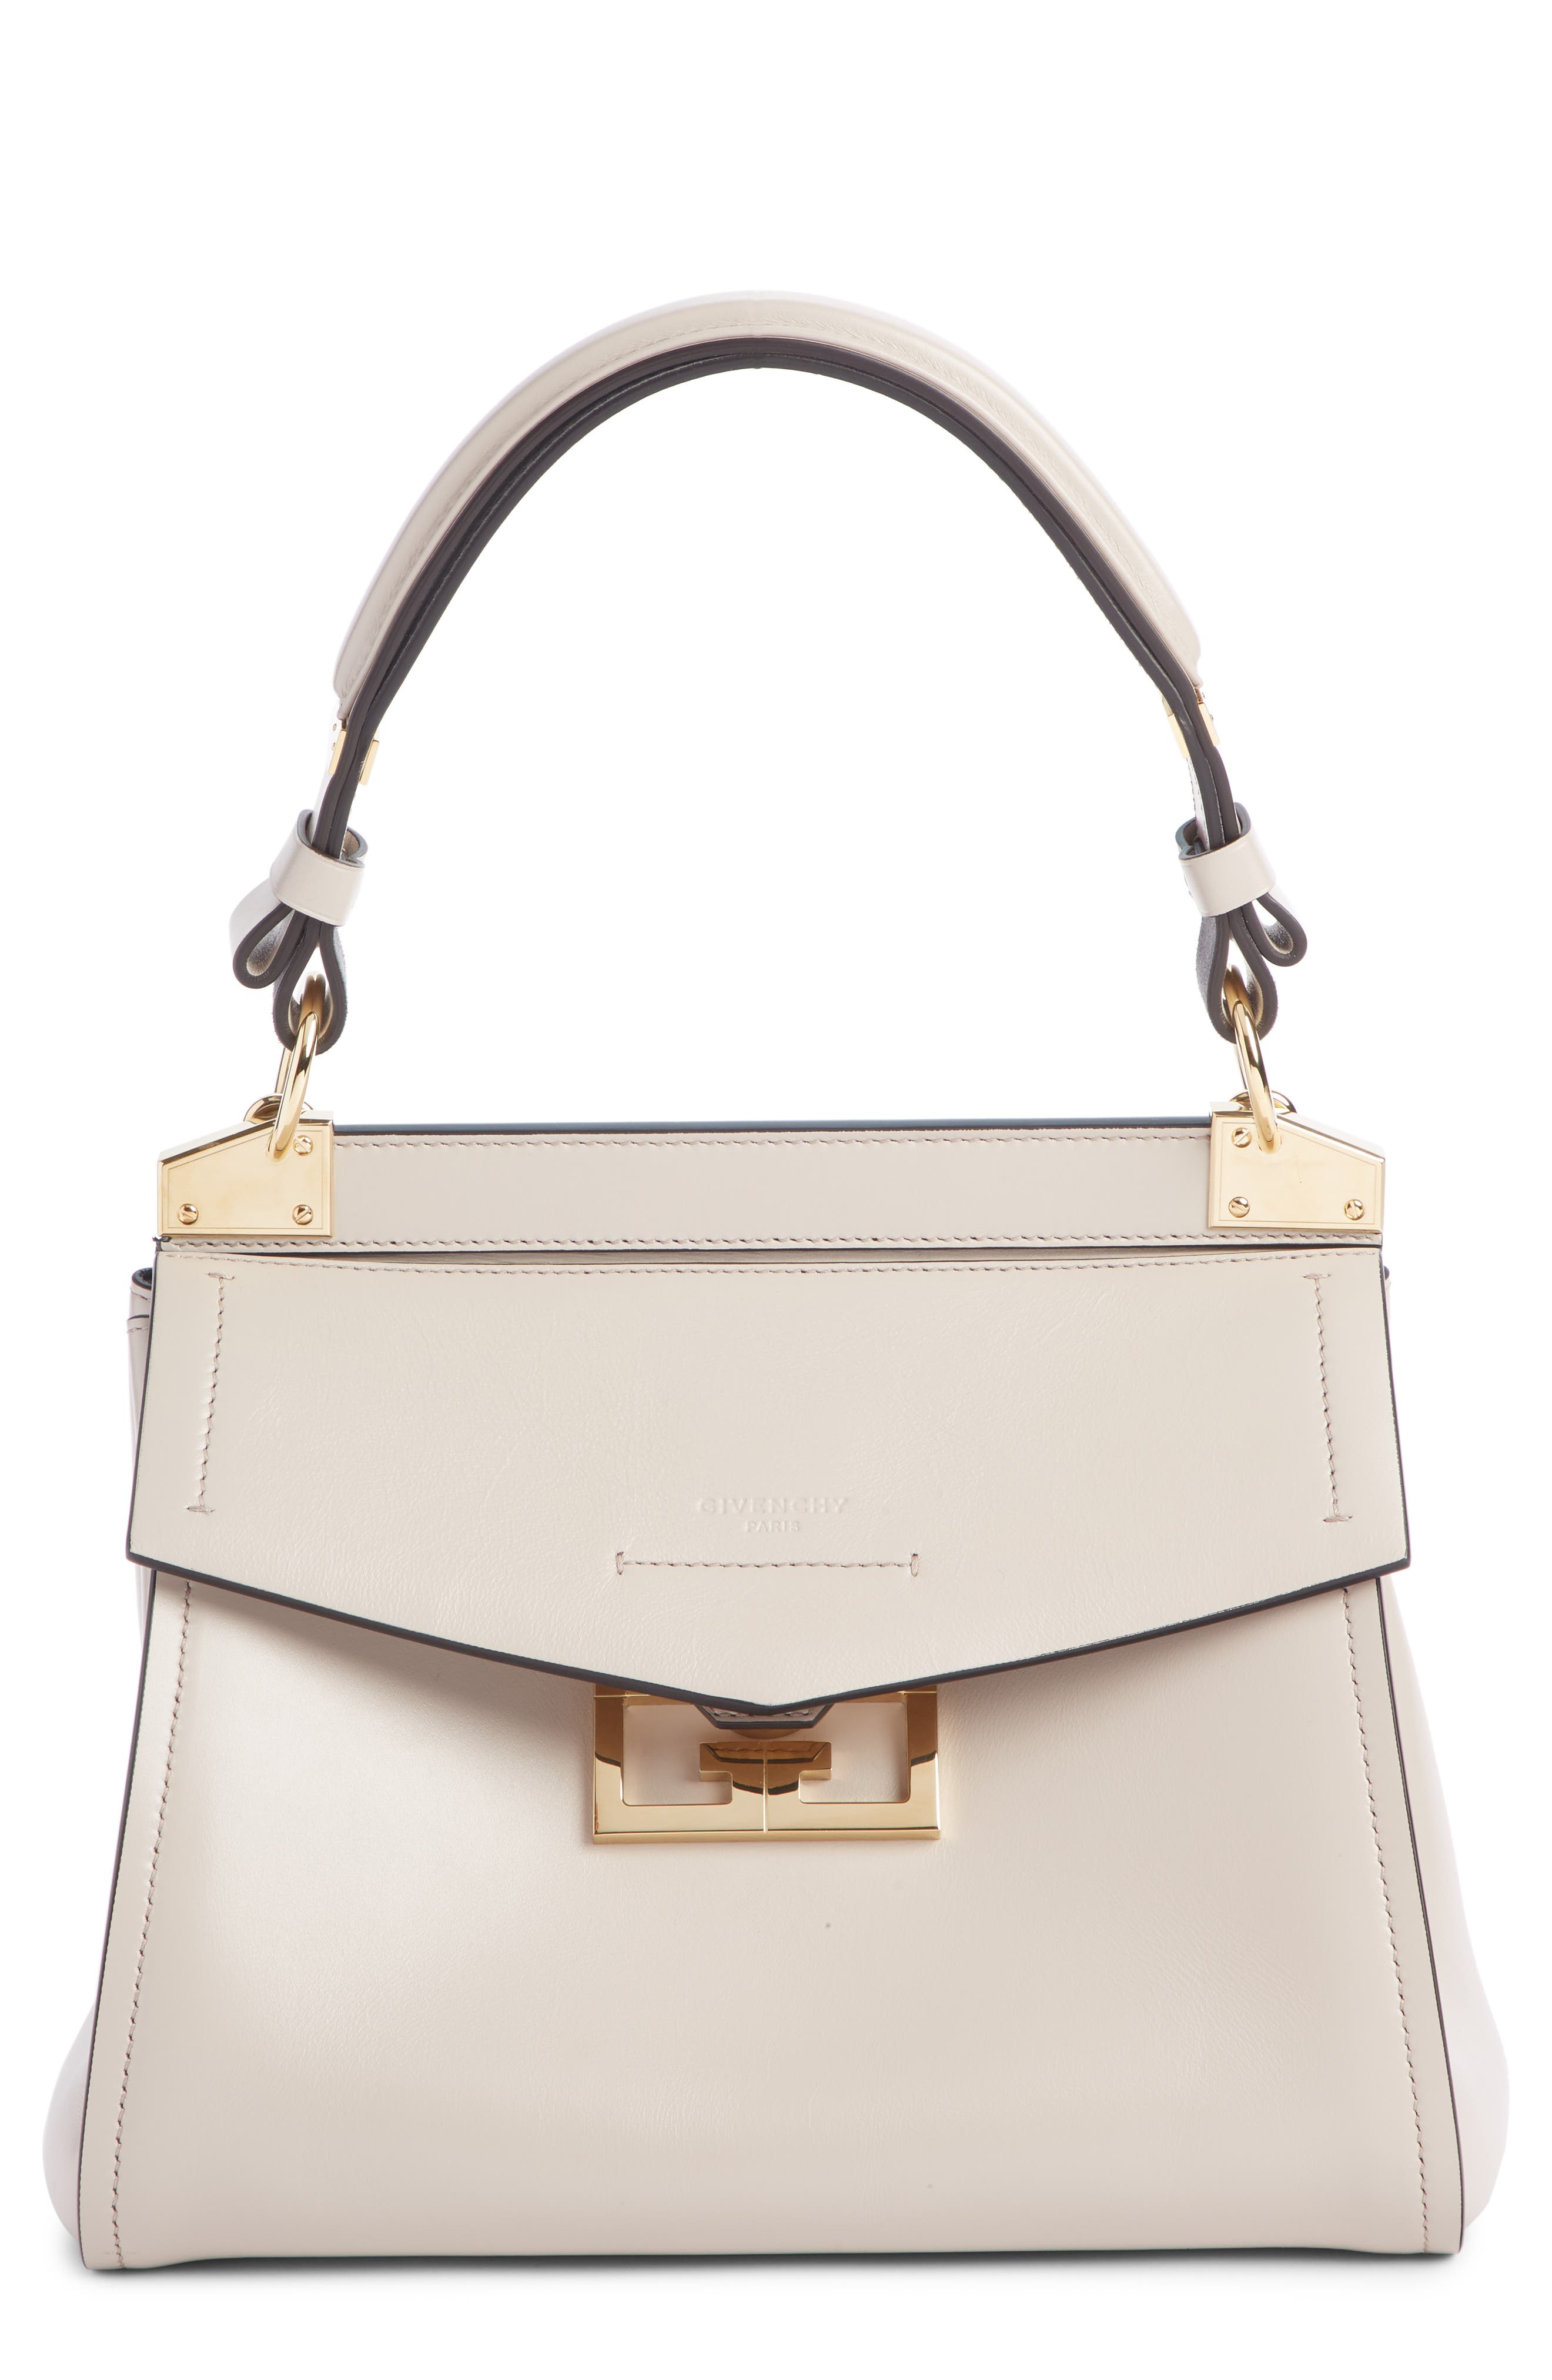 Givenchy Small Mystic Leather Satchel   Nordstrom